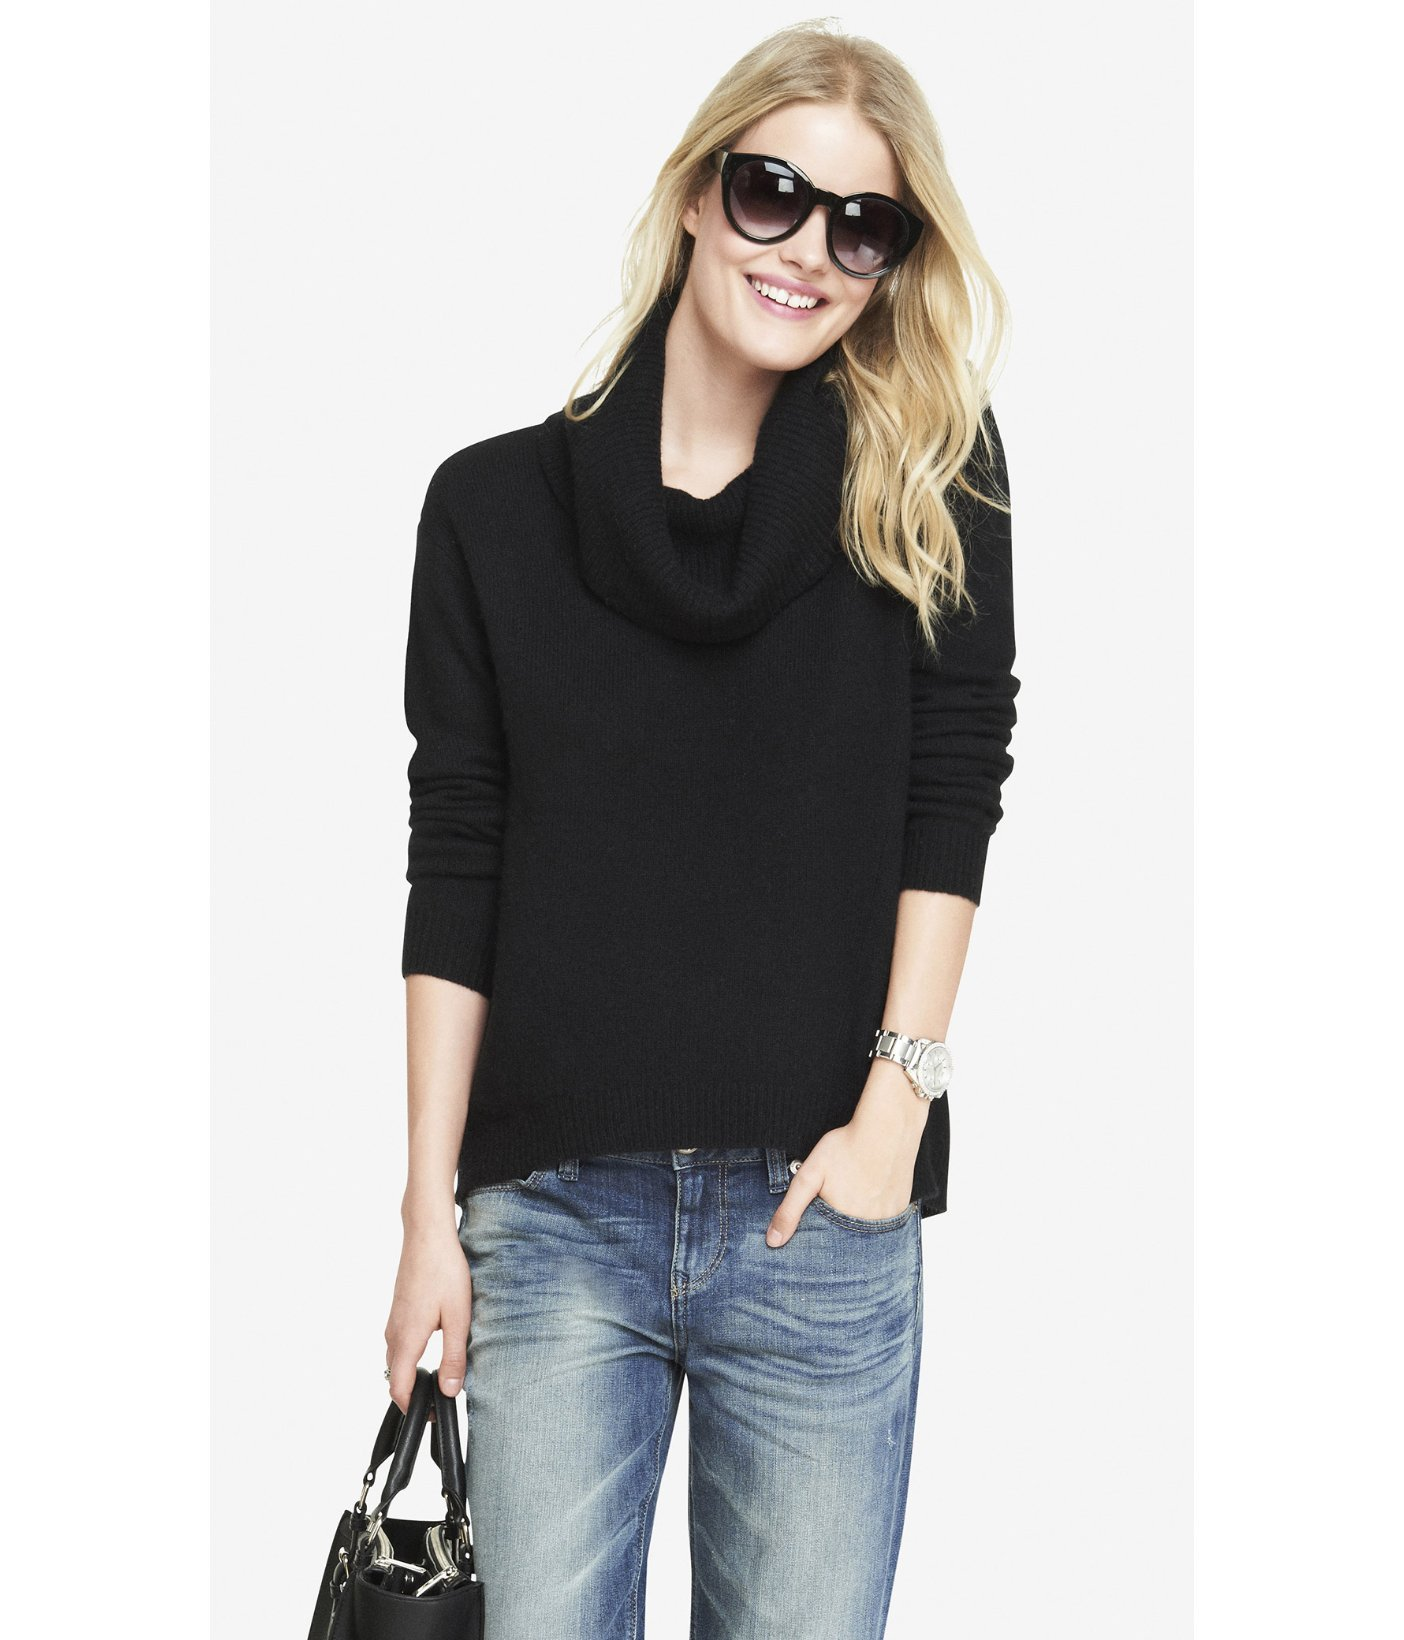 Express Oversized Cowl Neck Slanted Seam Sweater in Black | Lyst